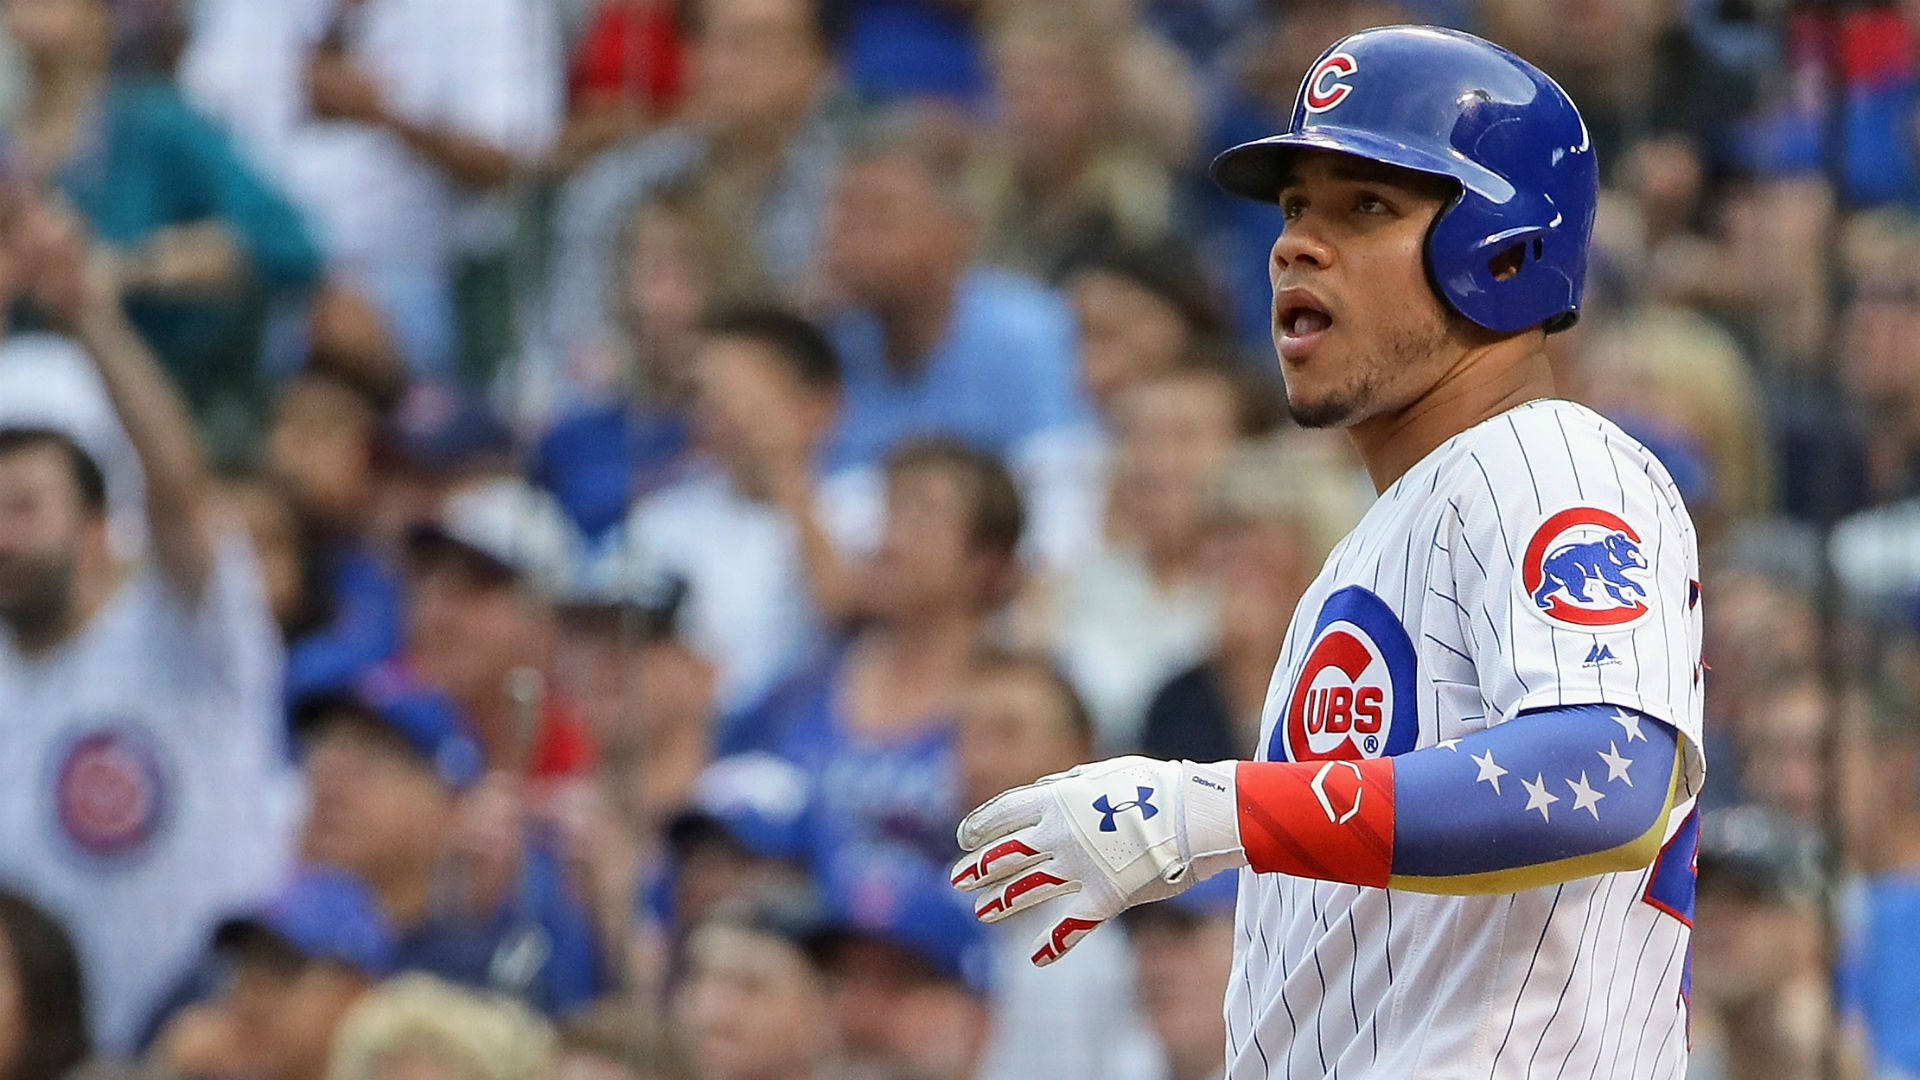 Cubs' Wilson Contreras to Miss Four to Six Weeks With Strained Hamstring